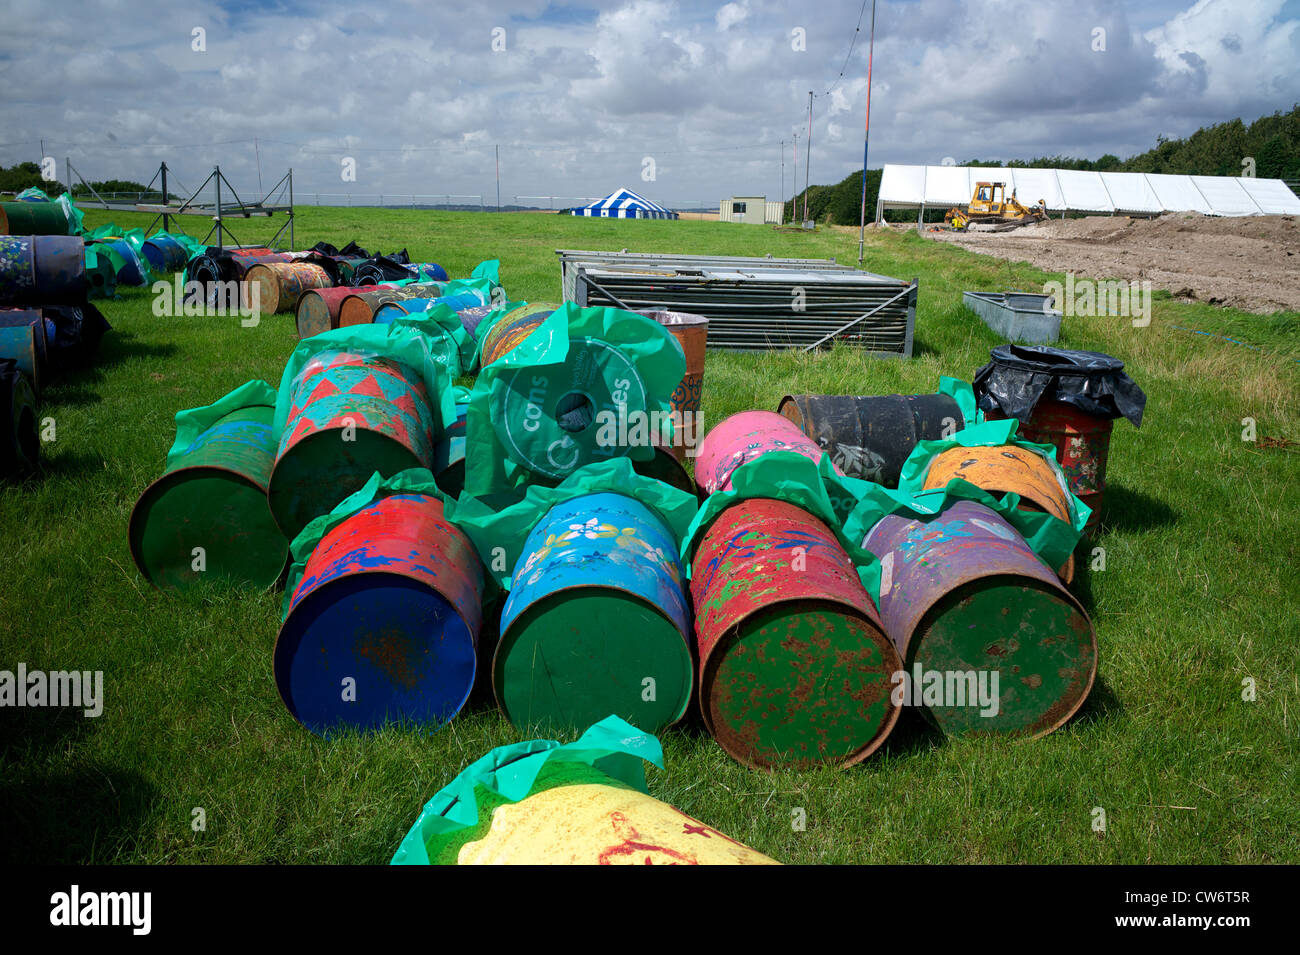 Rubbish bins in preparation for Boomtown Festival  UK - Stock Image